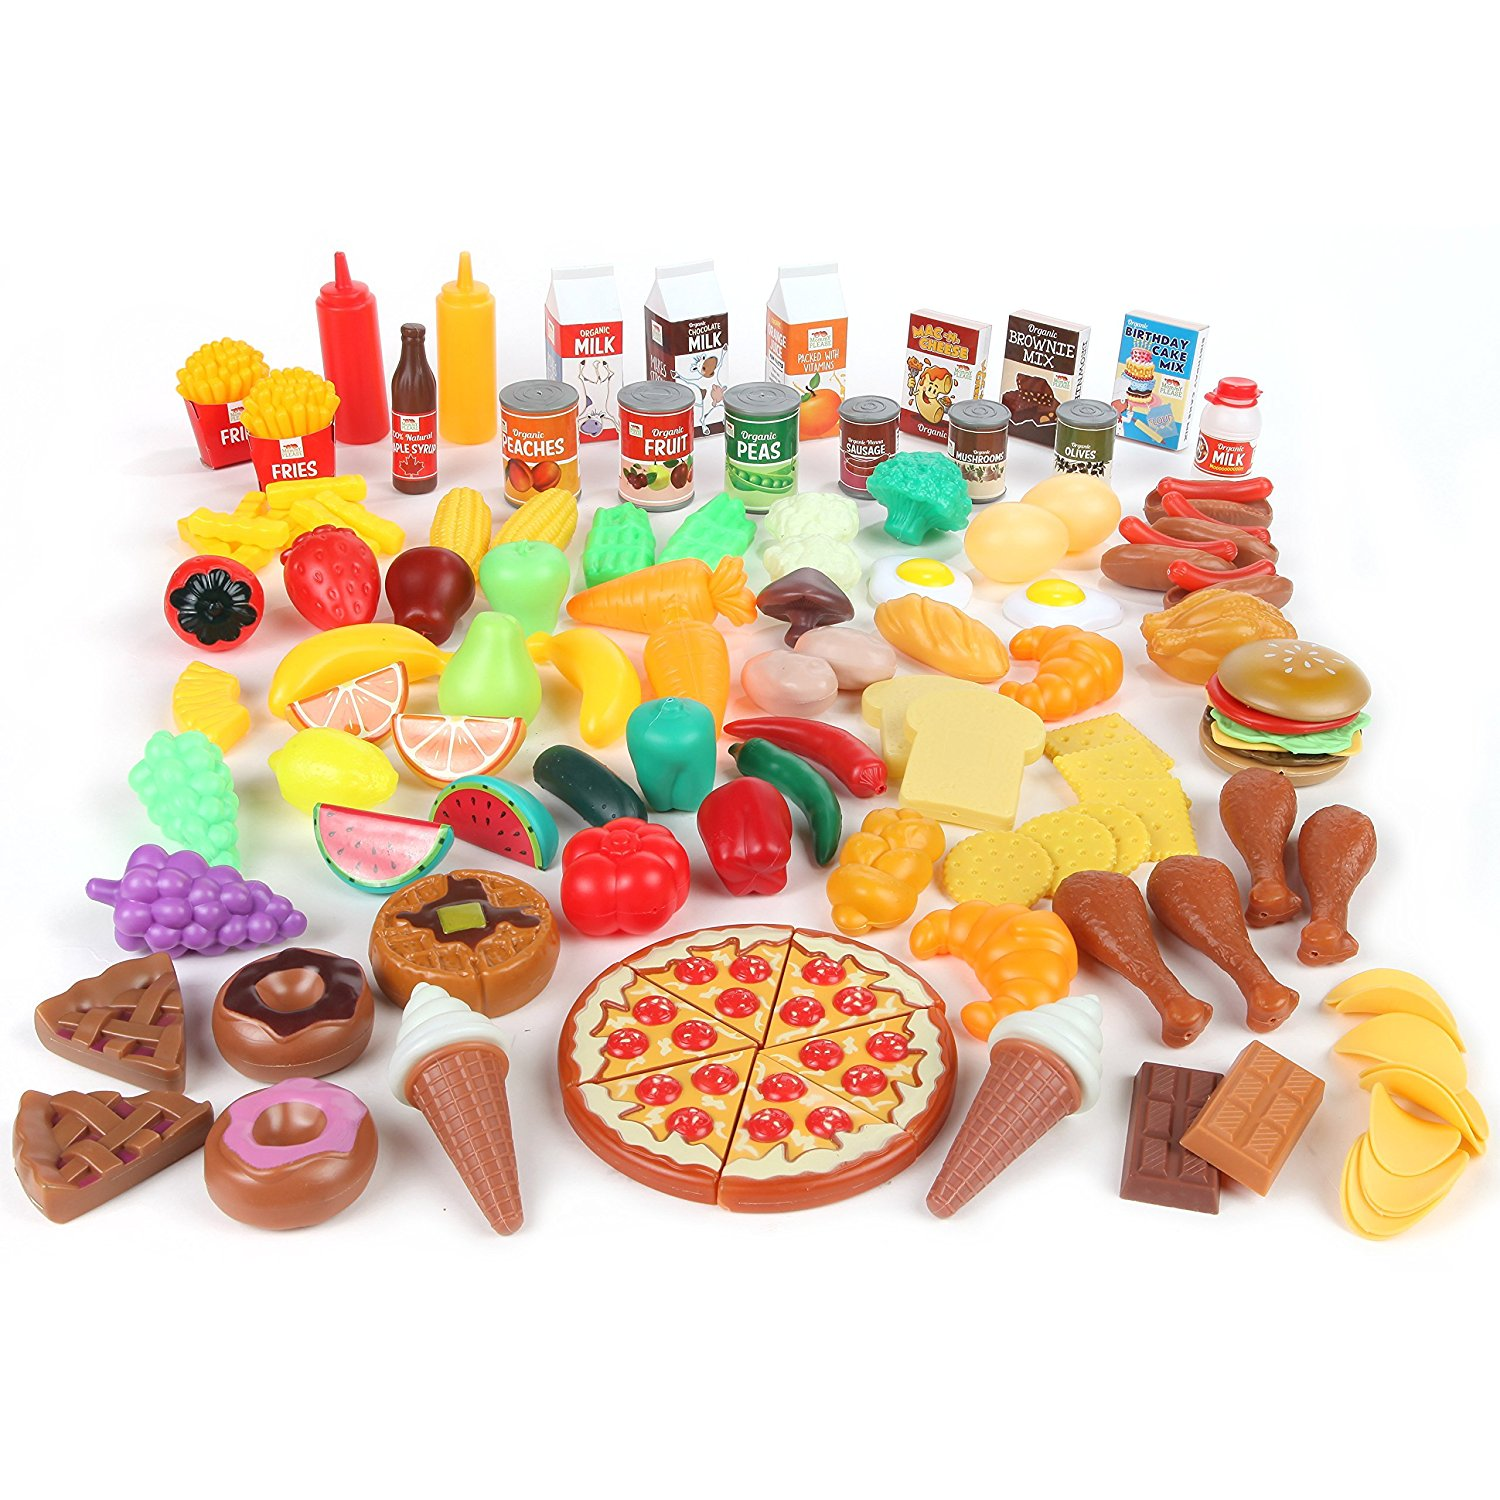 Realistic Play Food Toys : Musings of an average mom pretend play grocery store